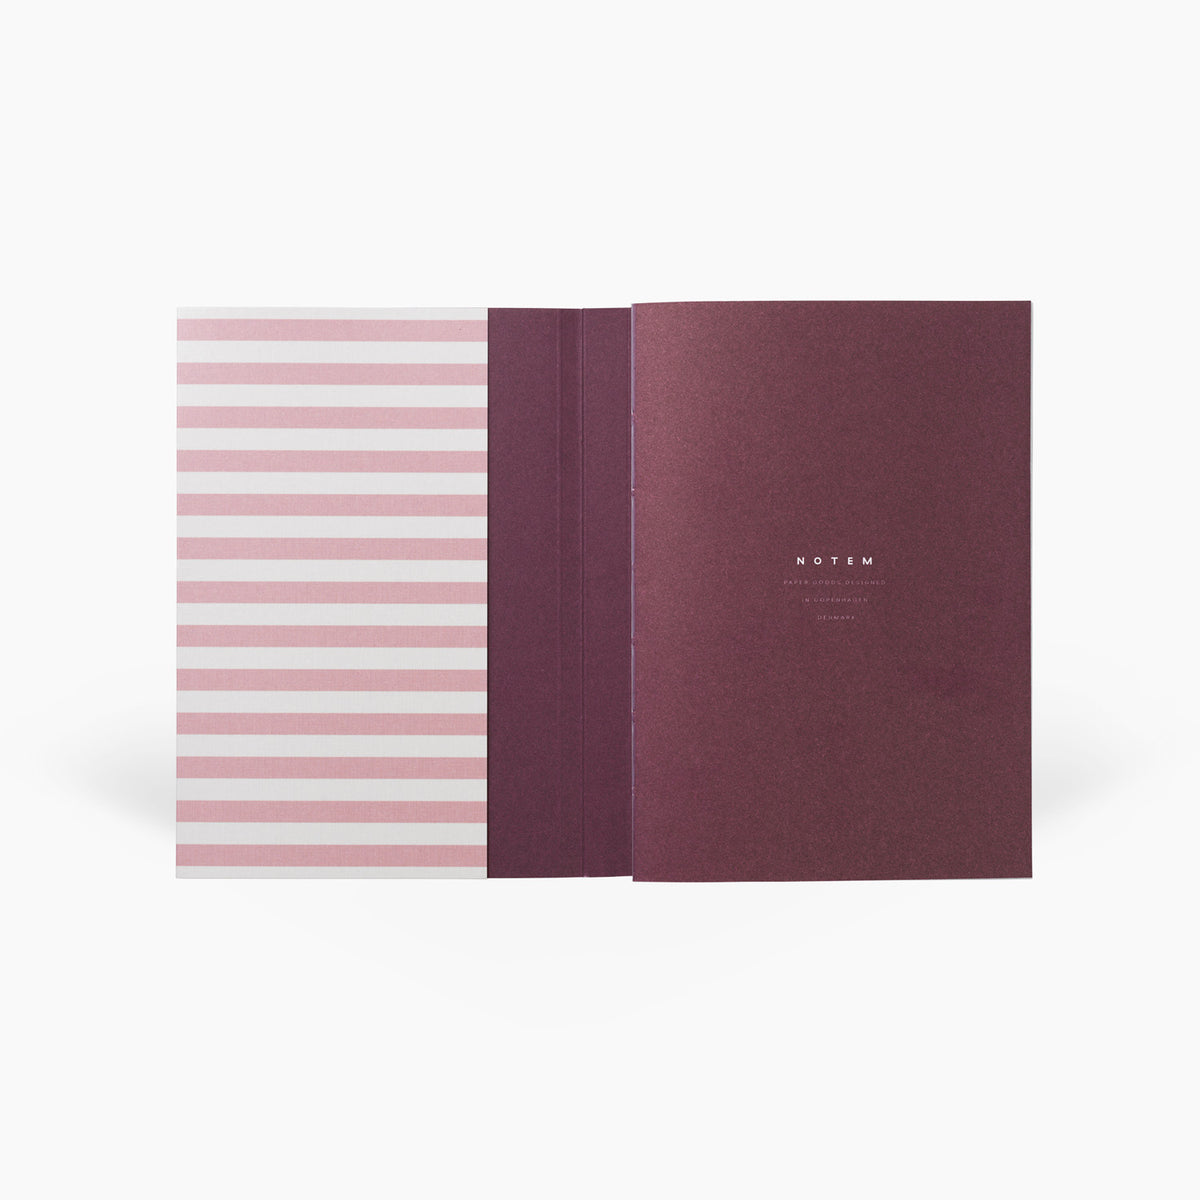 NOTEM Alva Annual Journal 2021, Flat-lay Binding, A6 - Rose - NOTEM studio